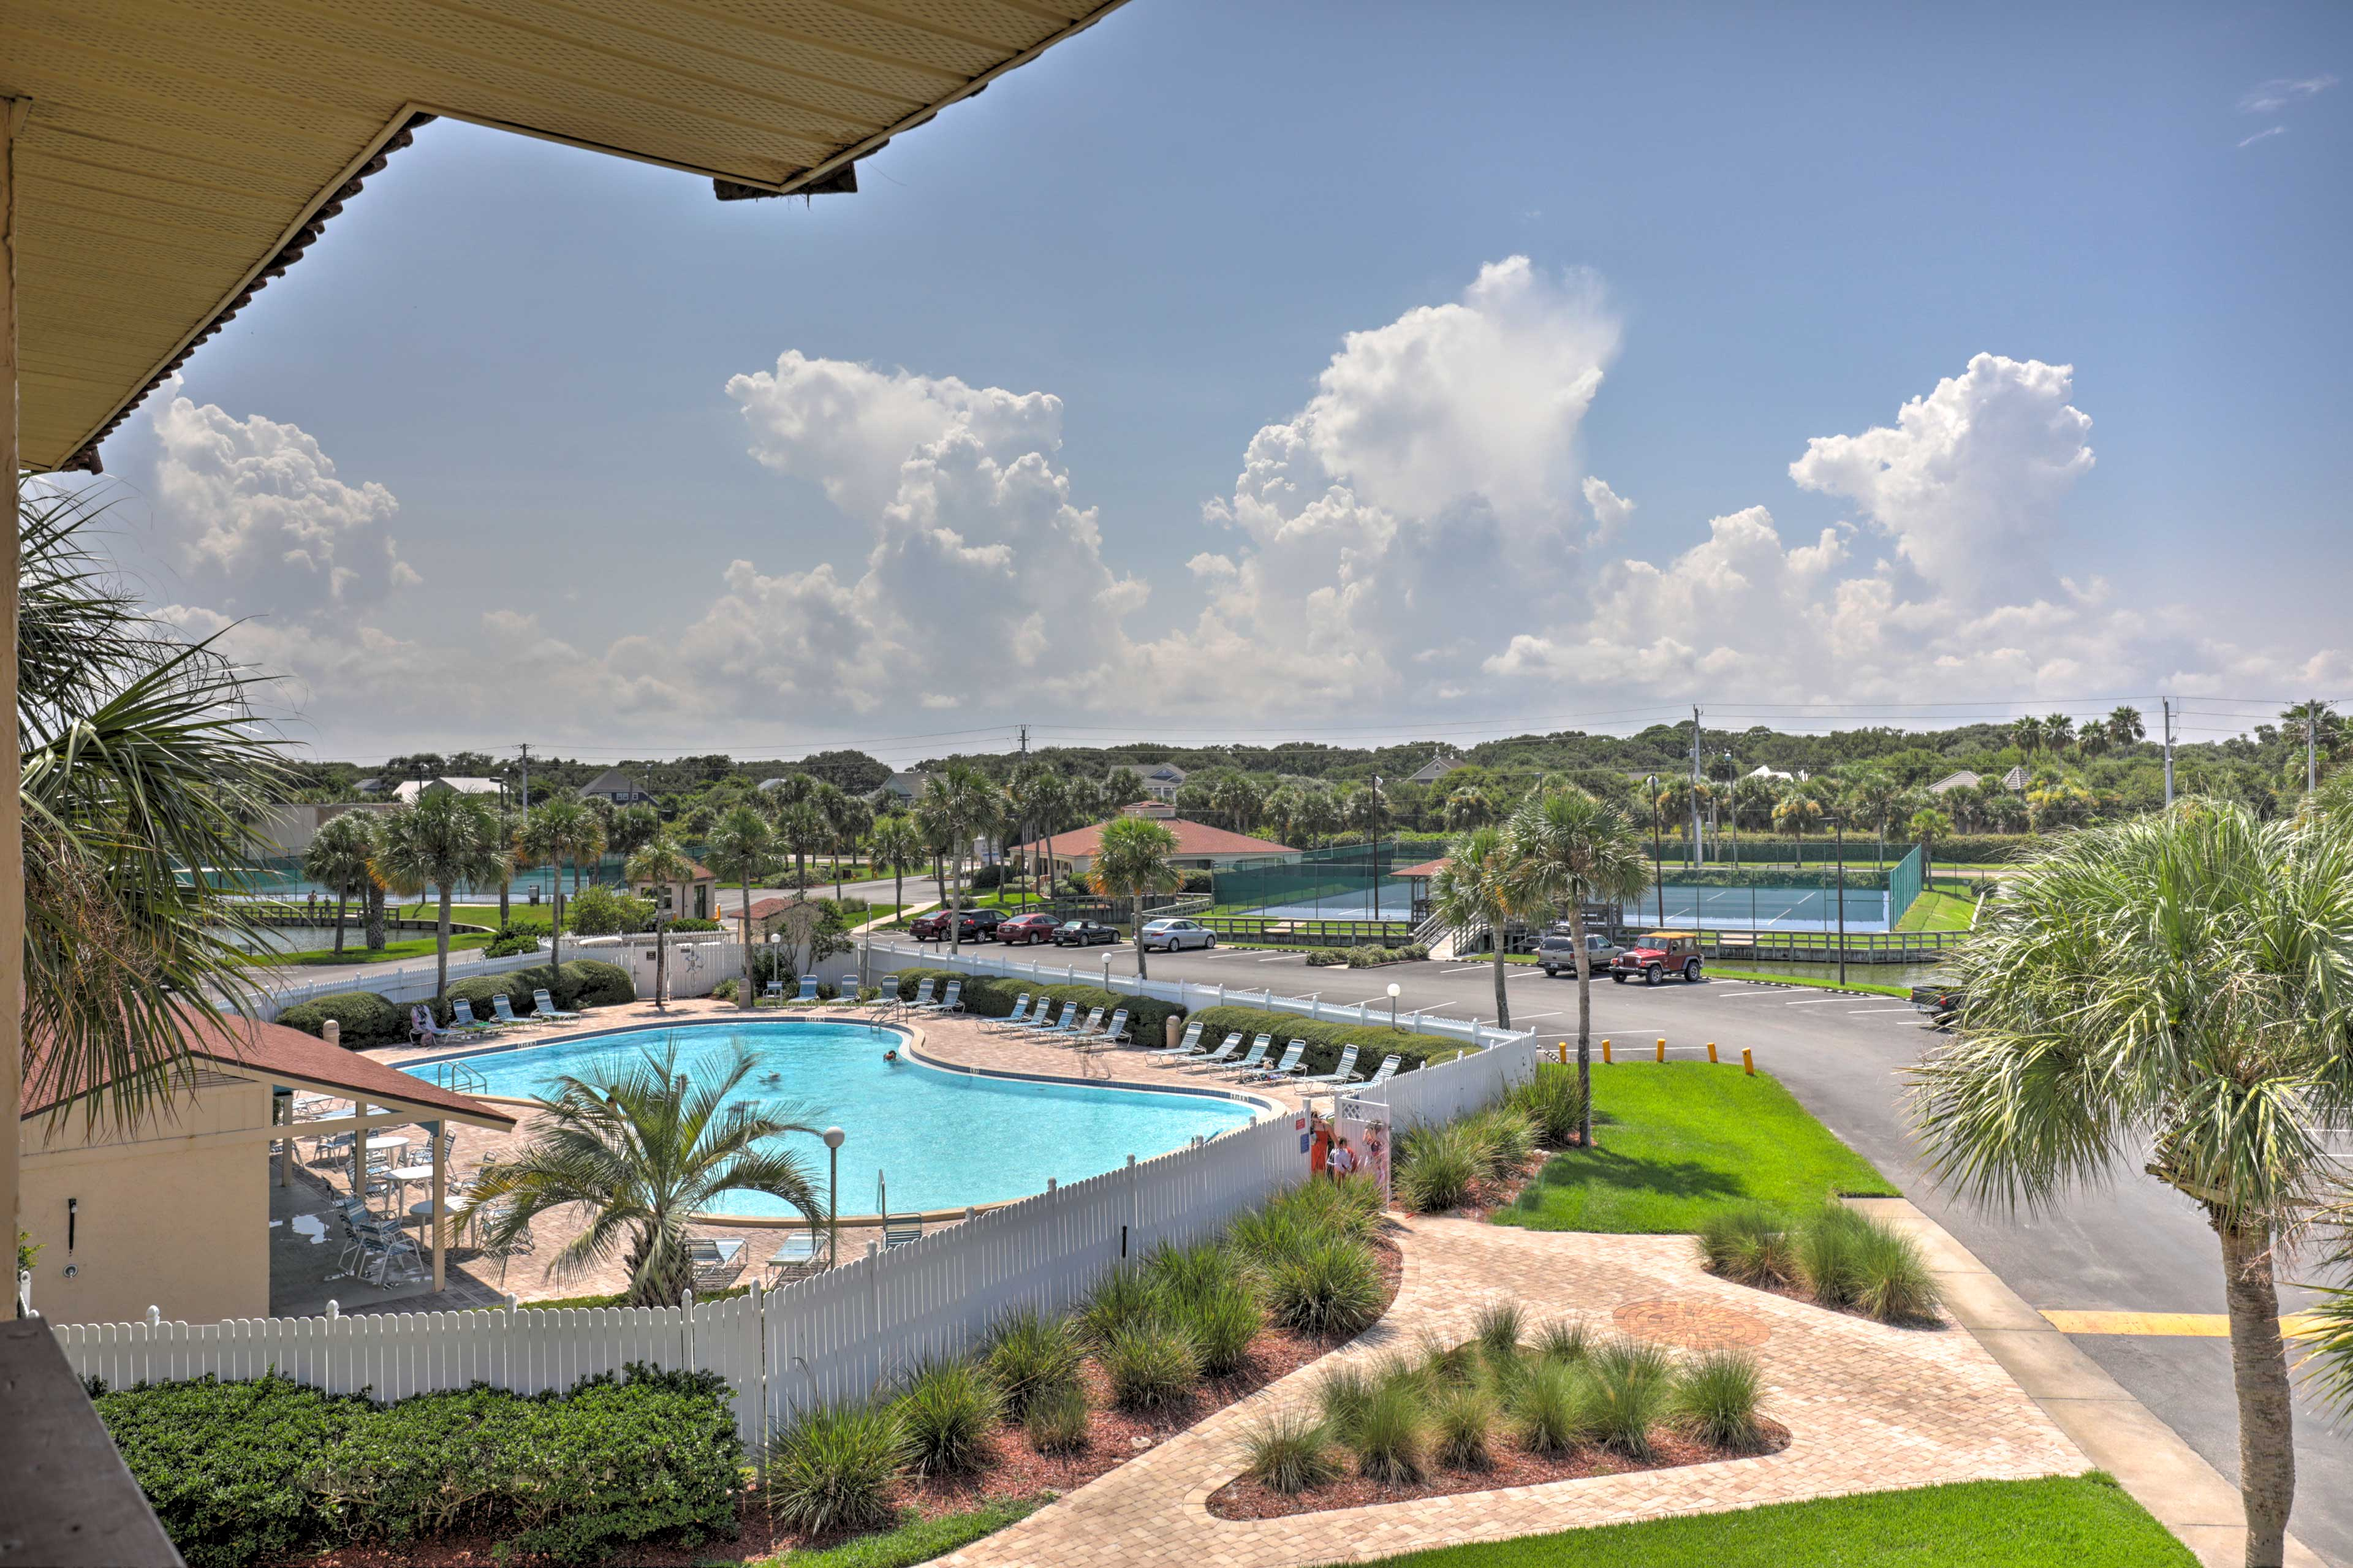 Take a look out on the upscale community amenities.